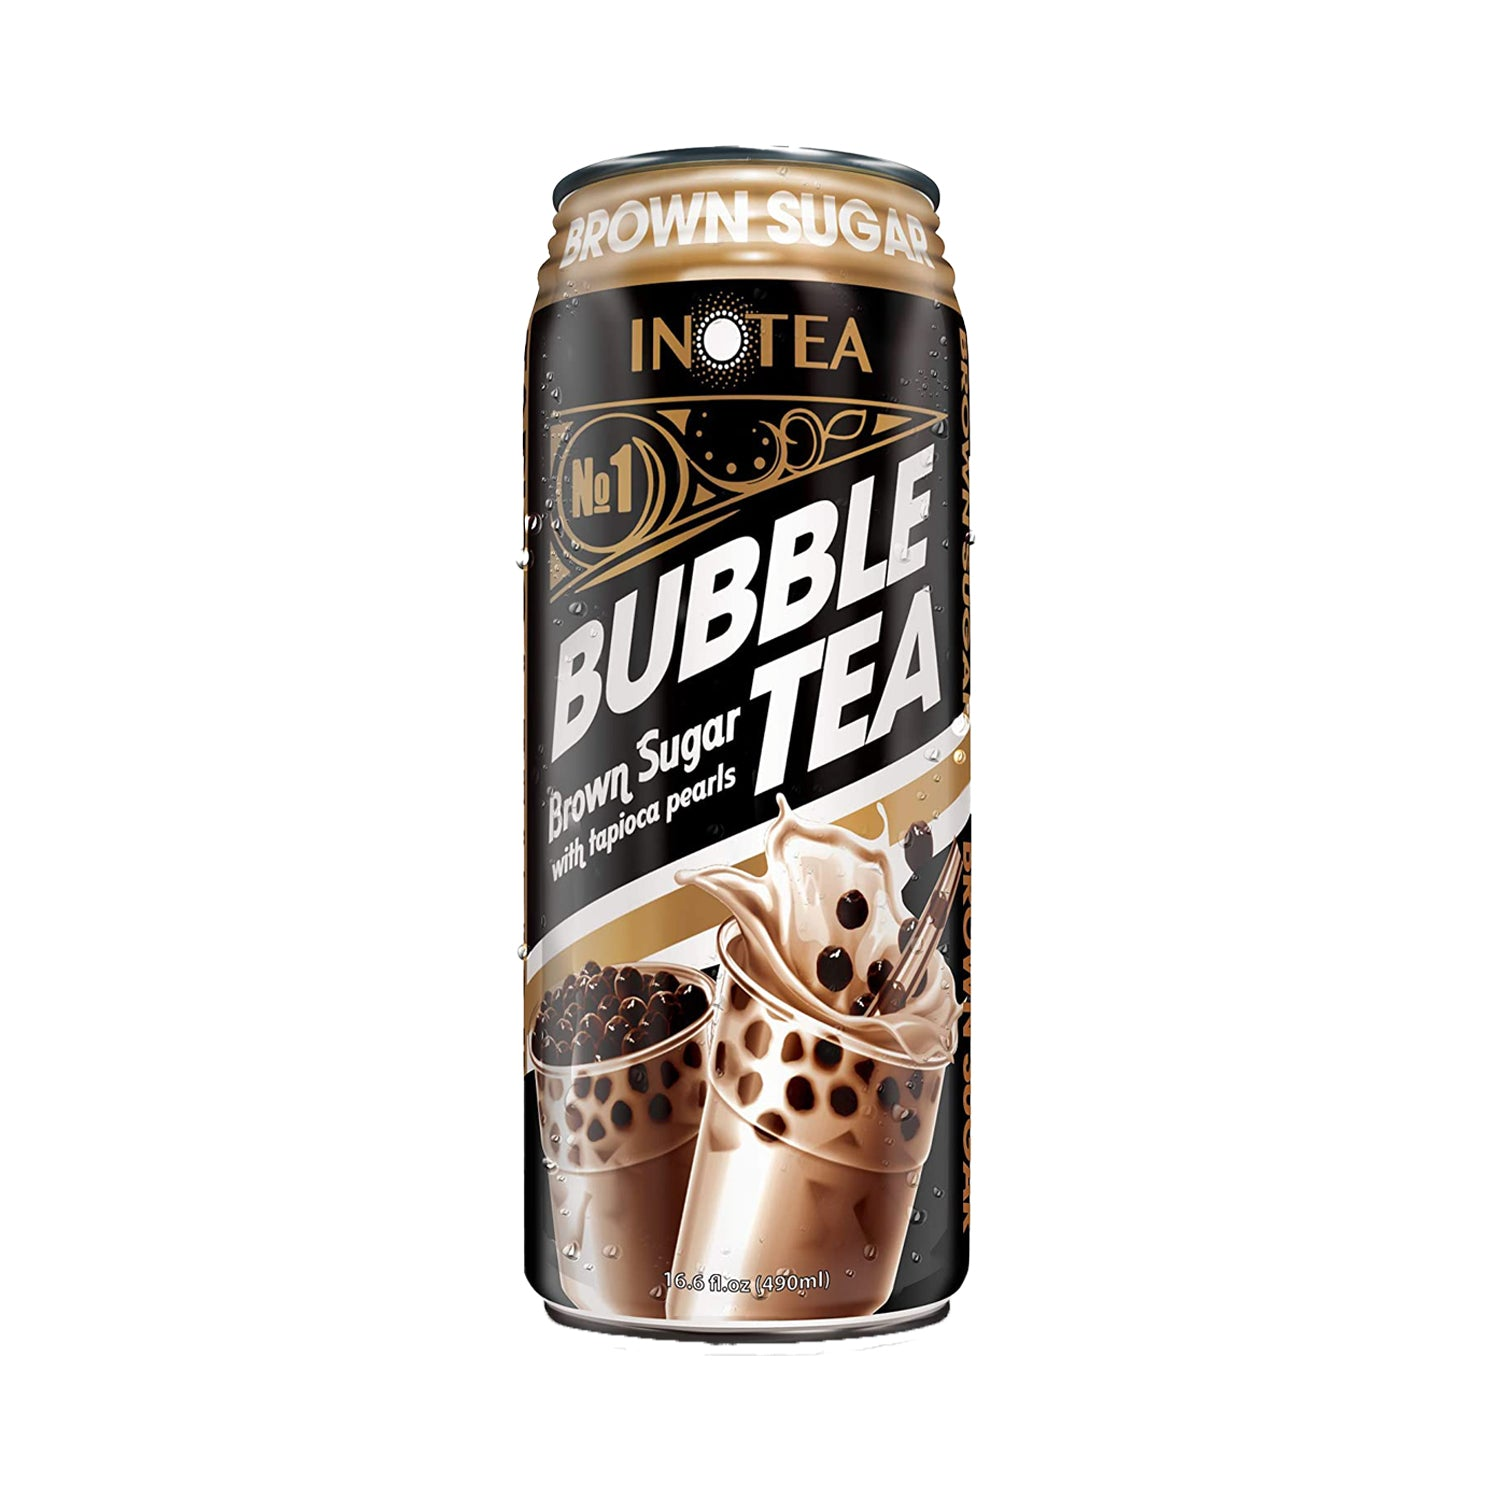 Inotea Brown Sugar Bubble Tea Drink 16.6oz